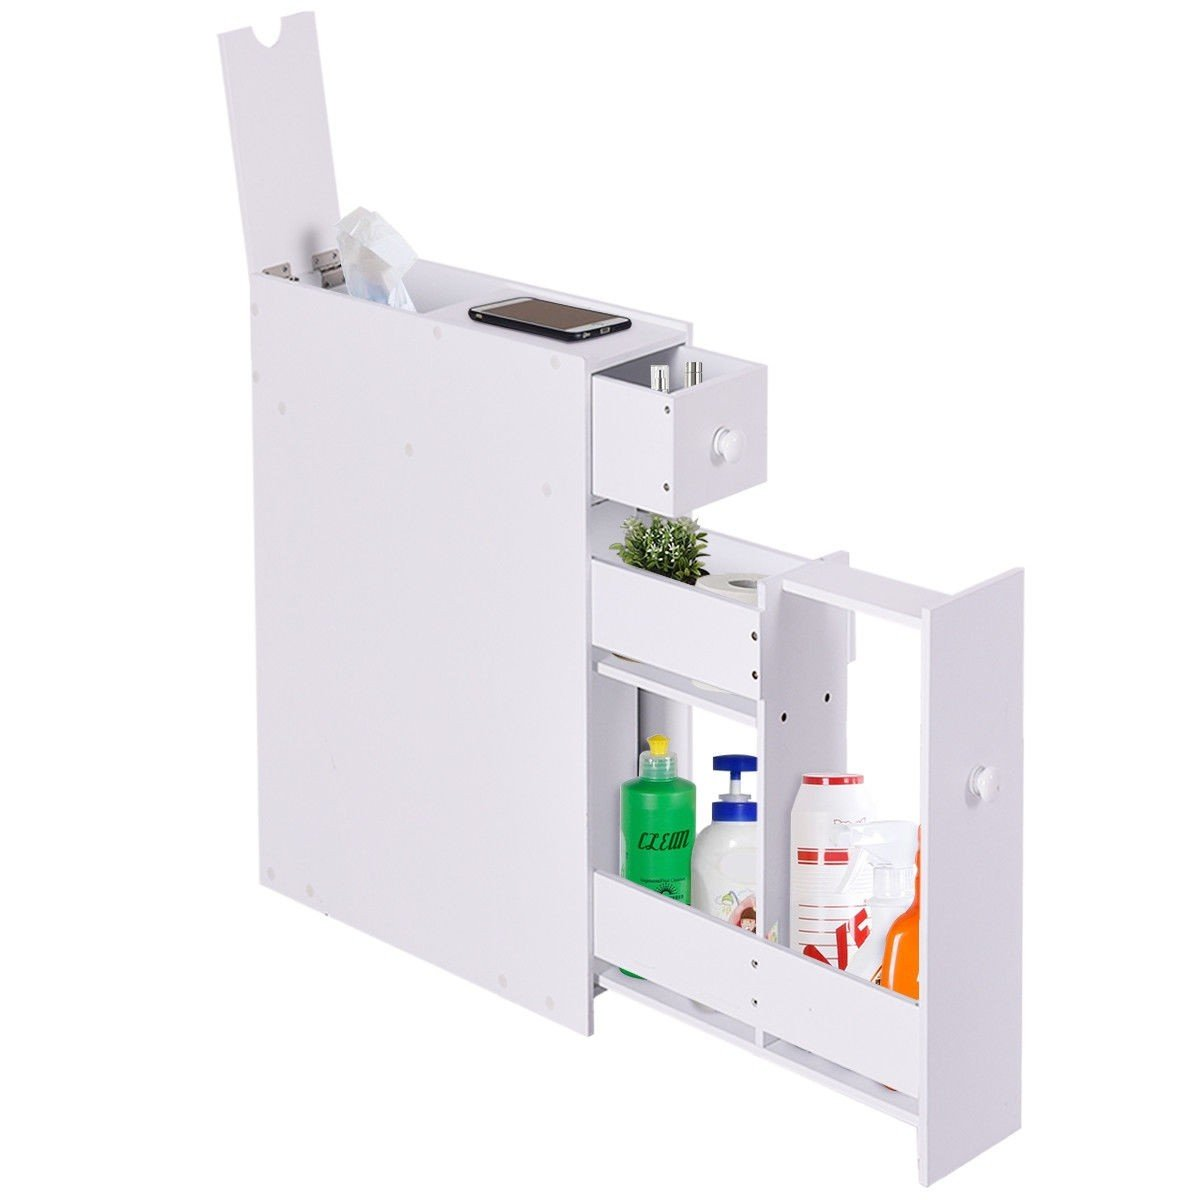 LordBee New White Bathroom Cabinet Space Saver Storage Organizer MDF Small Size Stylish Modern Nice Chic Decor Furniture Home Towels Shampoo Bottles by LordBee (Image #4)